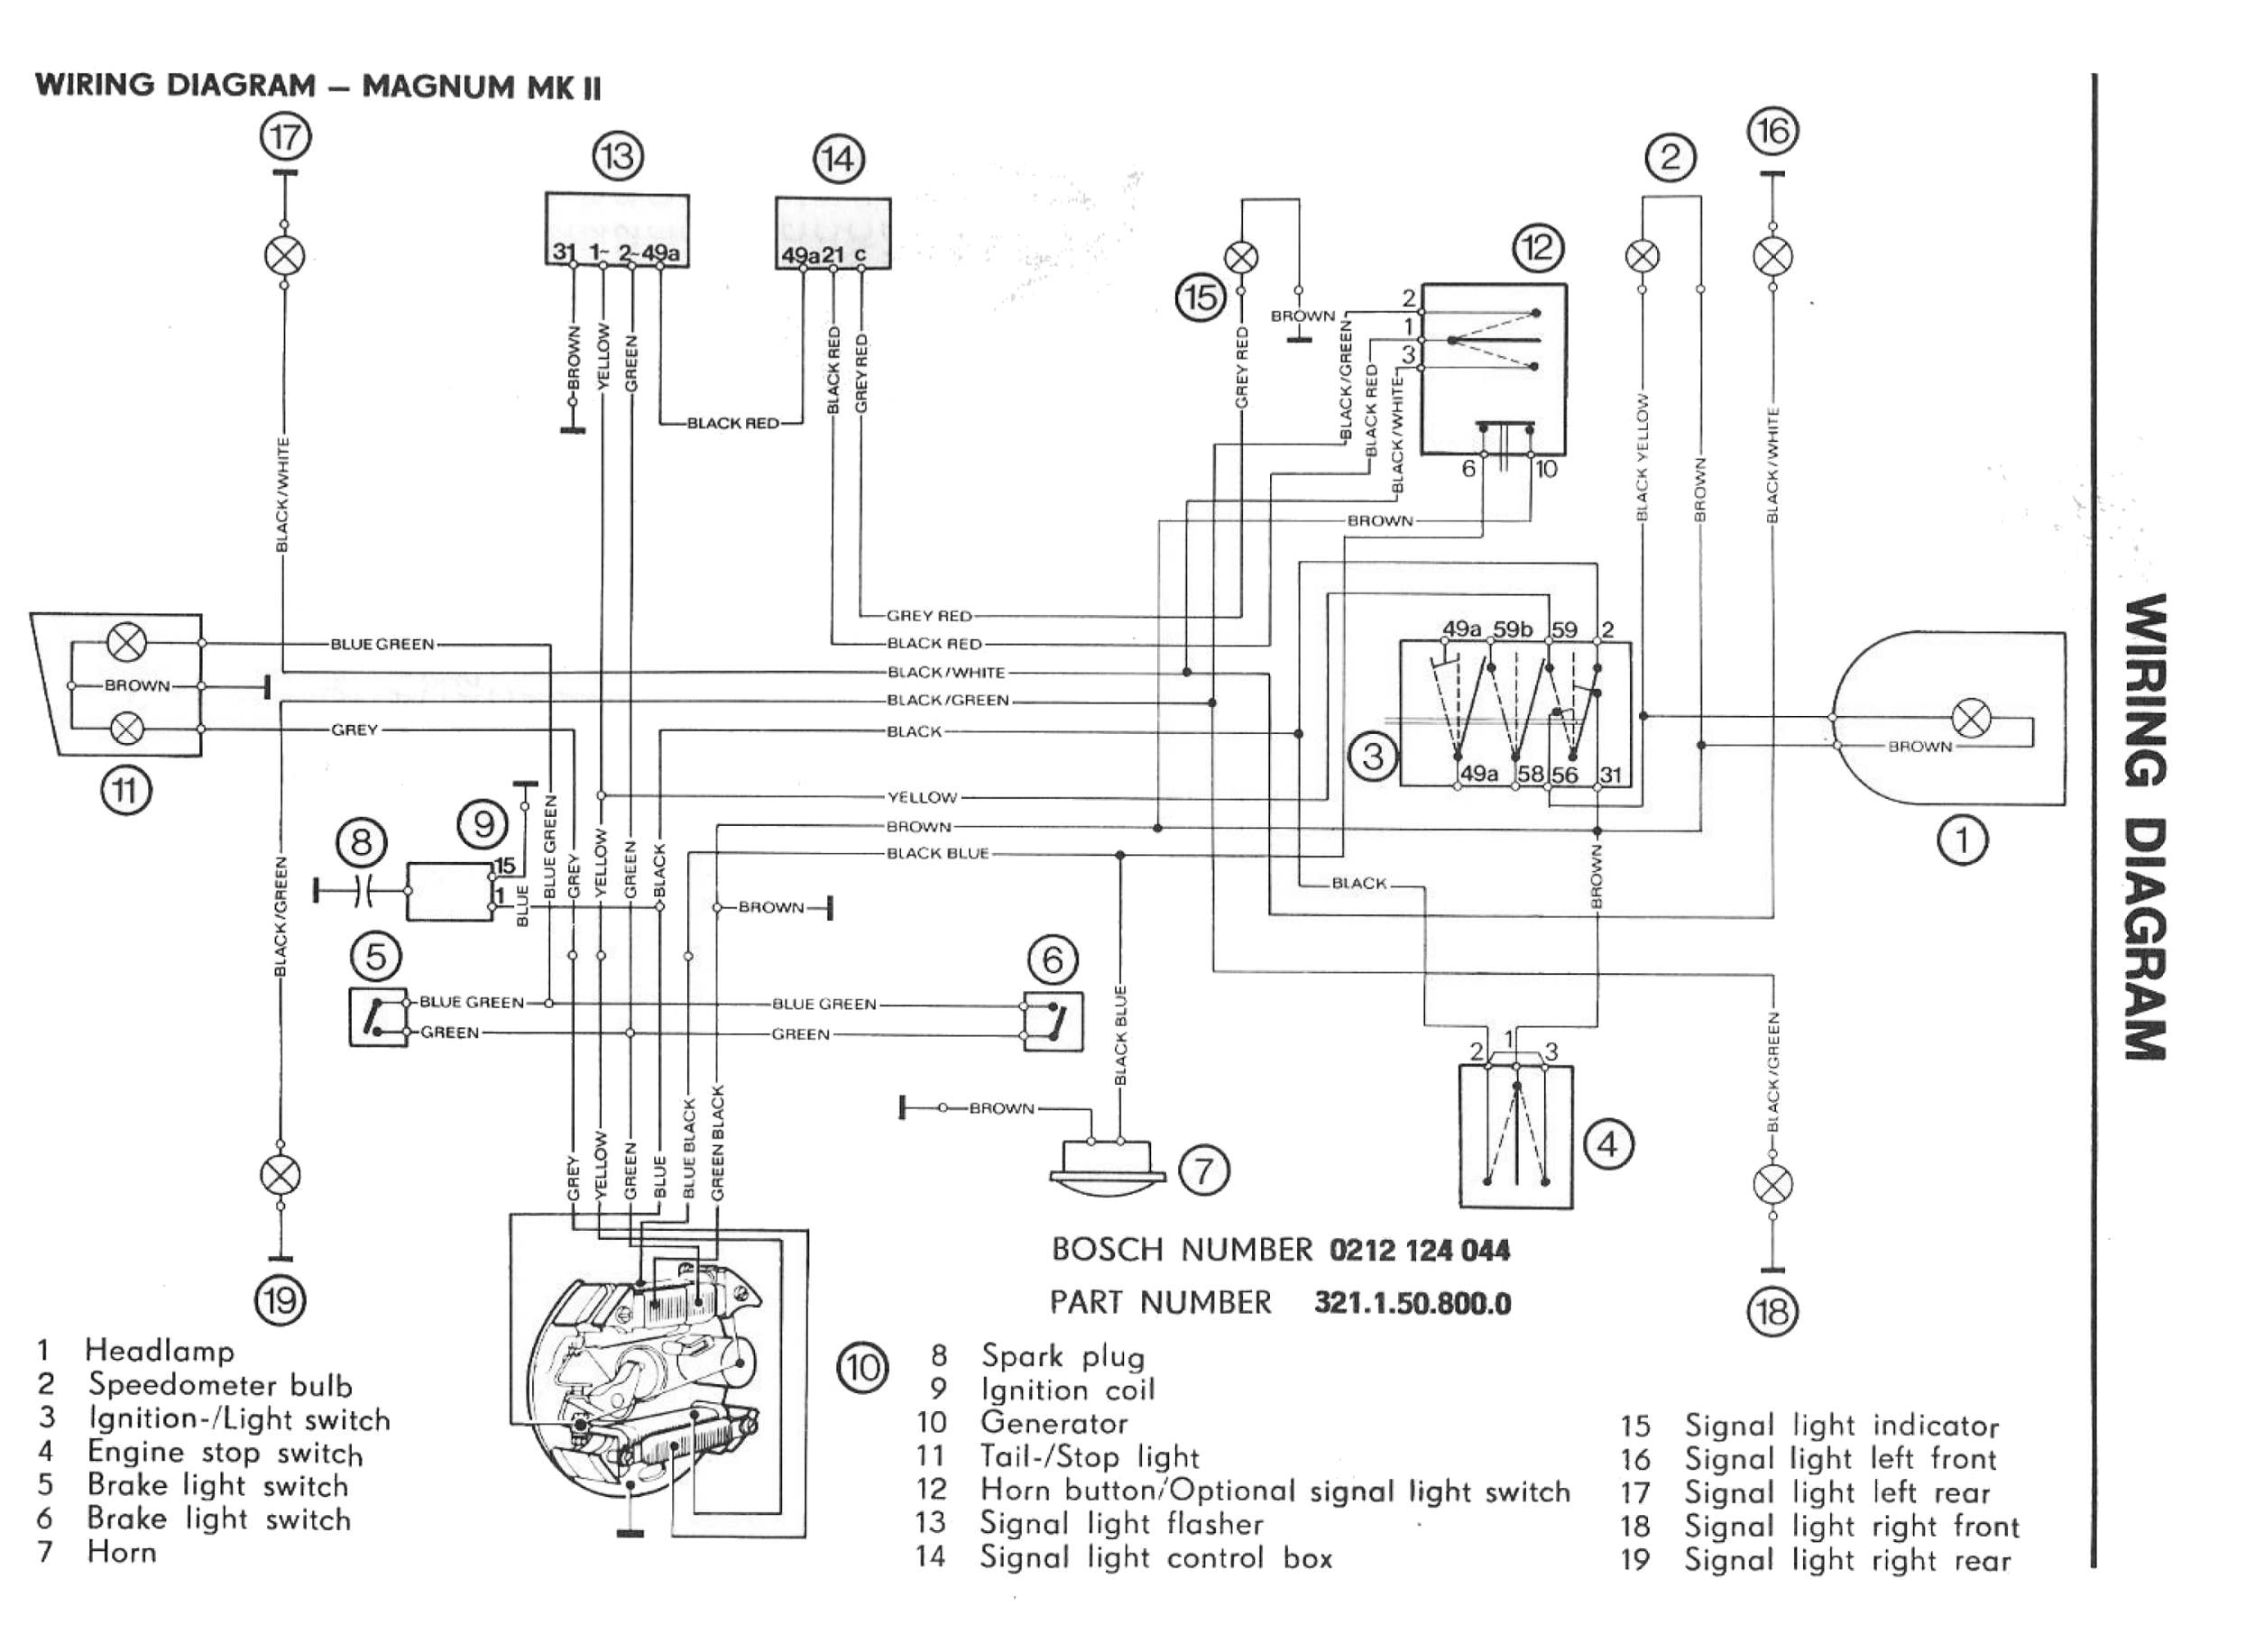 [DIAGRAM] 2005 Magnum Wiring Diagram FULL Version HD